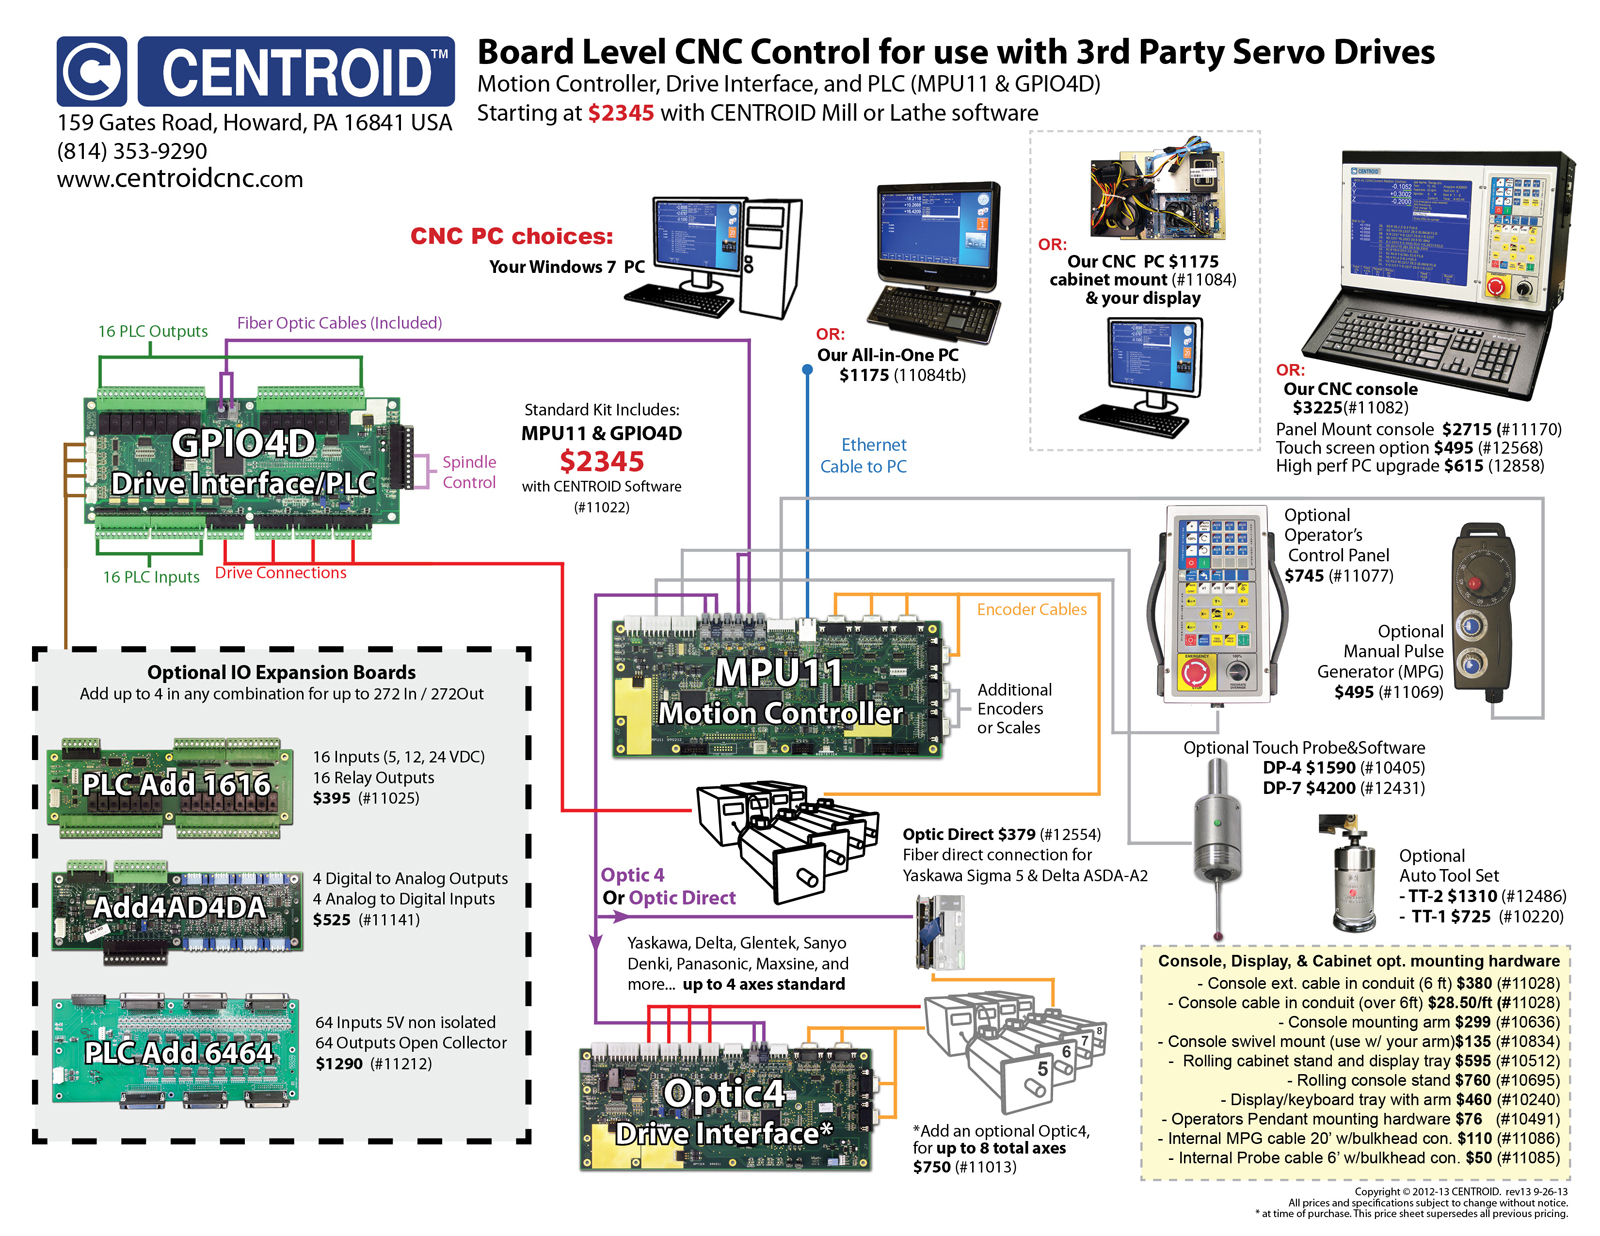 CENTROID CNC control for use with Yaskawa and Delta AC brushless servo  drives